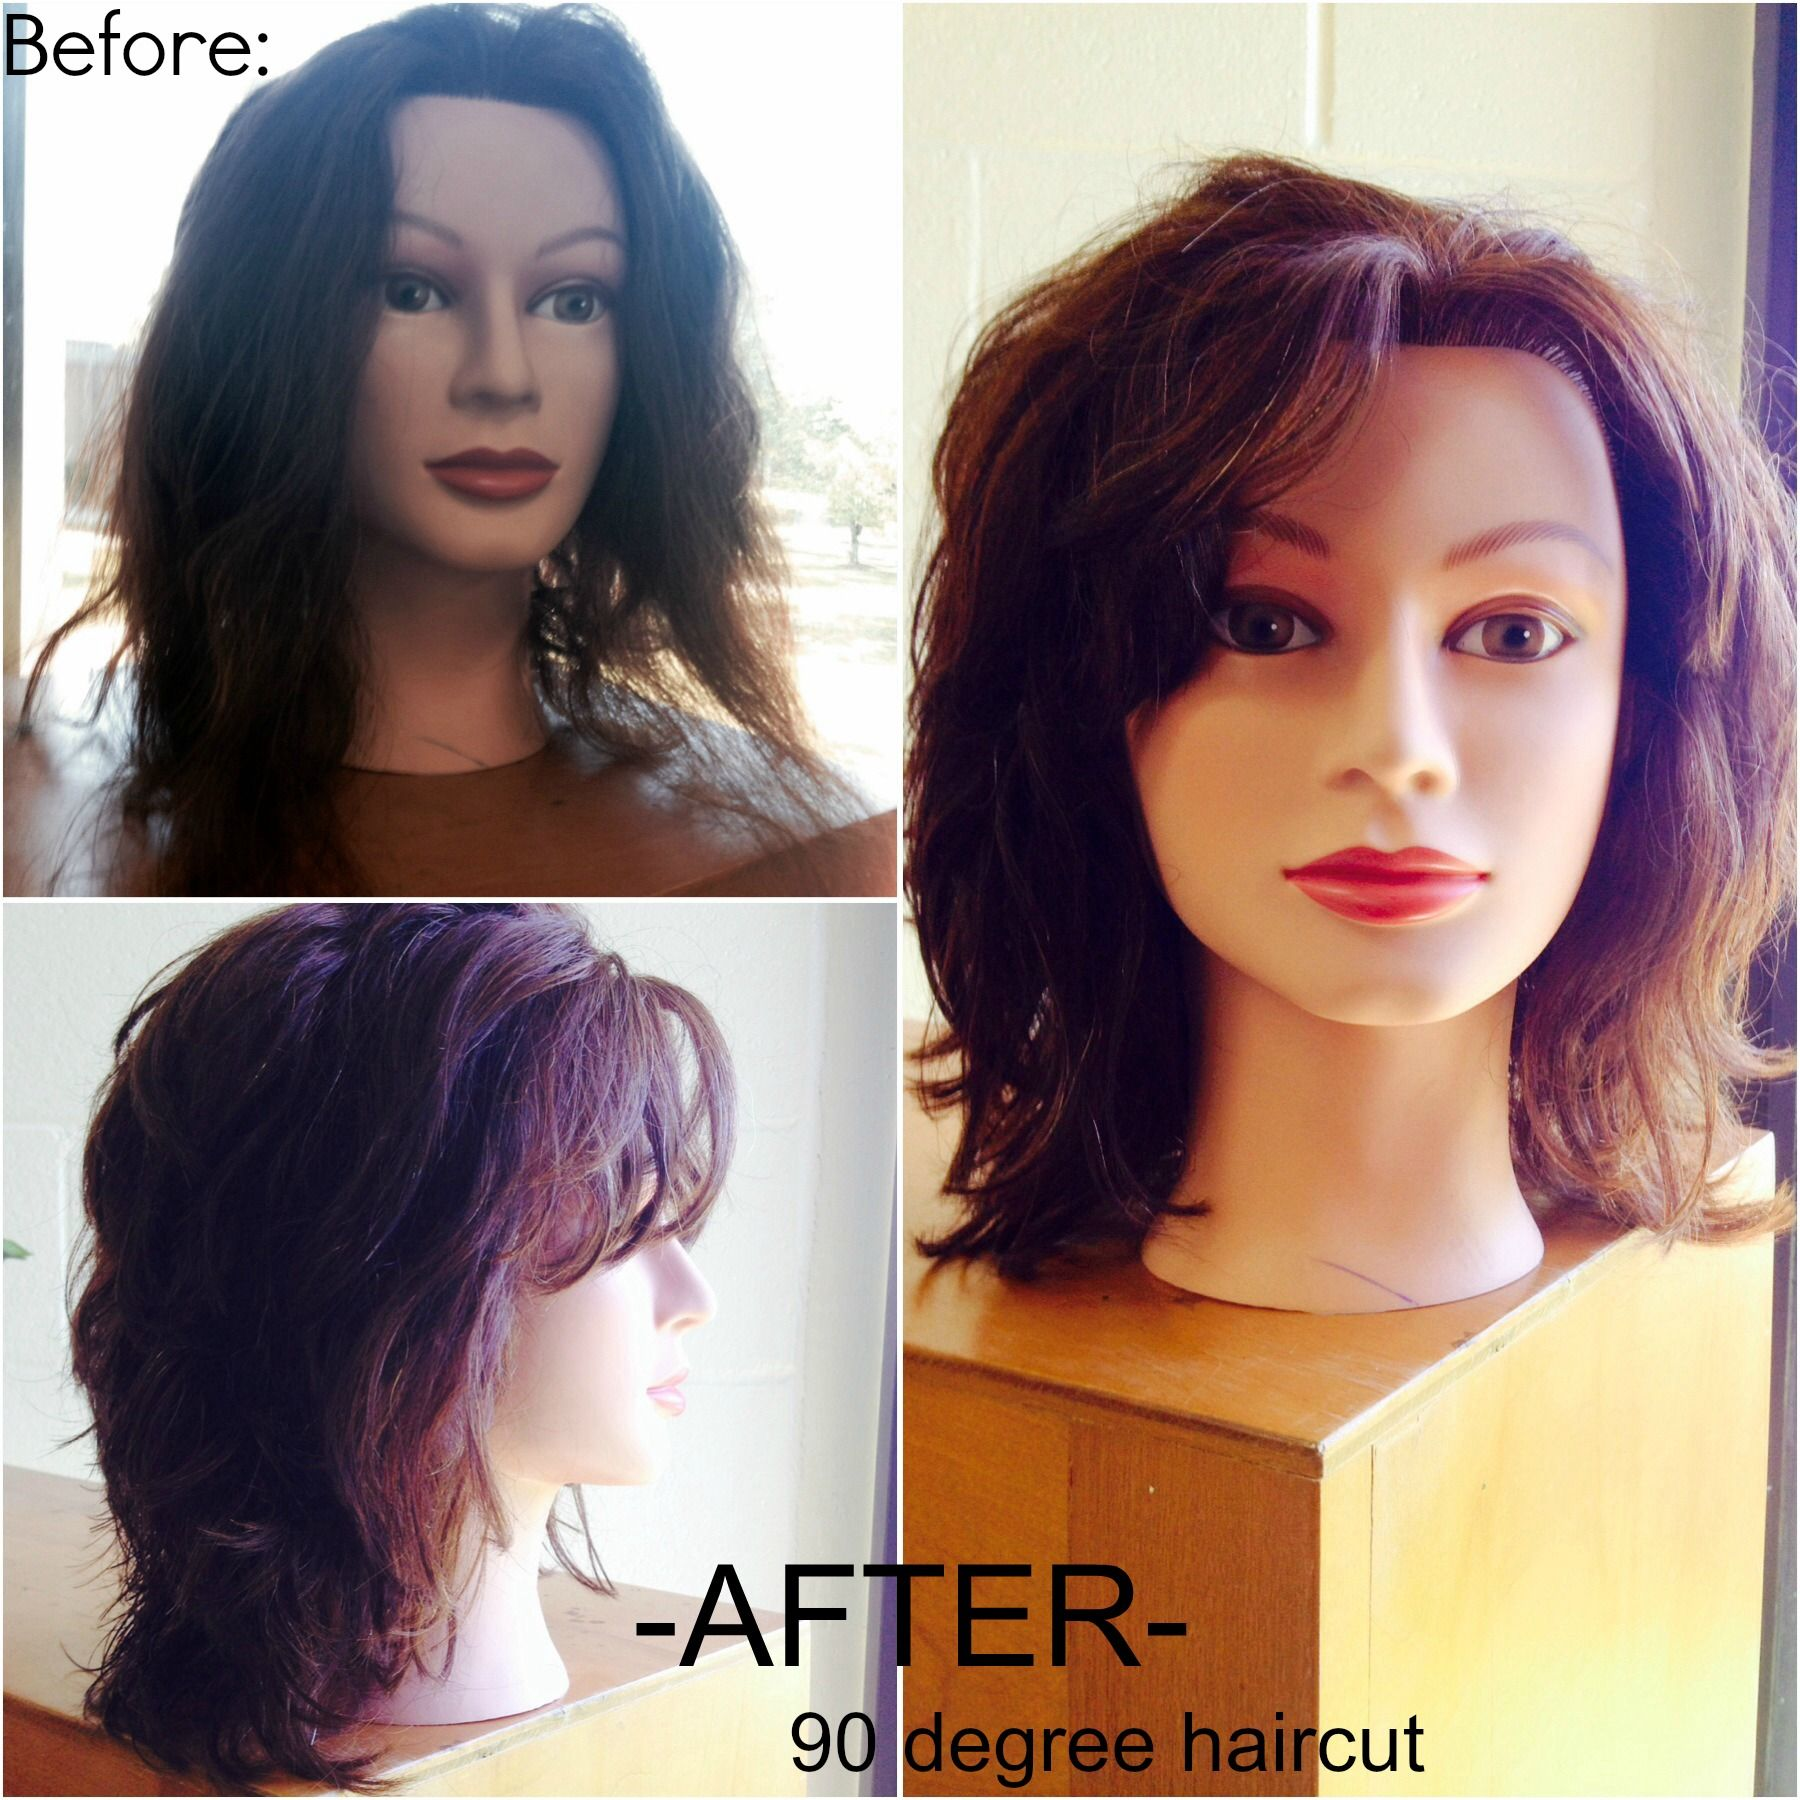 Before And After 90 Degree Haircut   After Sectioning The Hair For The 90  Degree